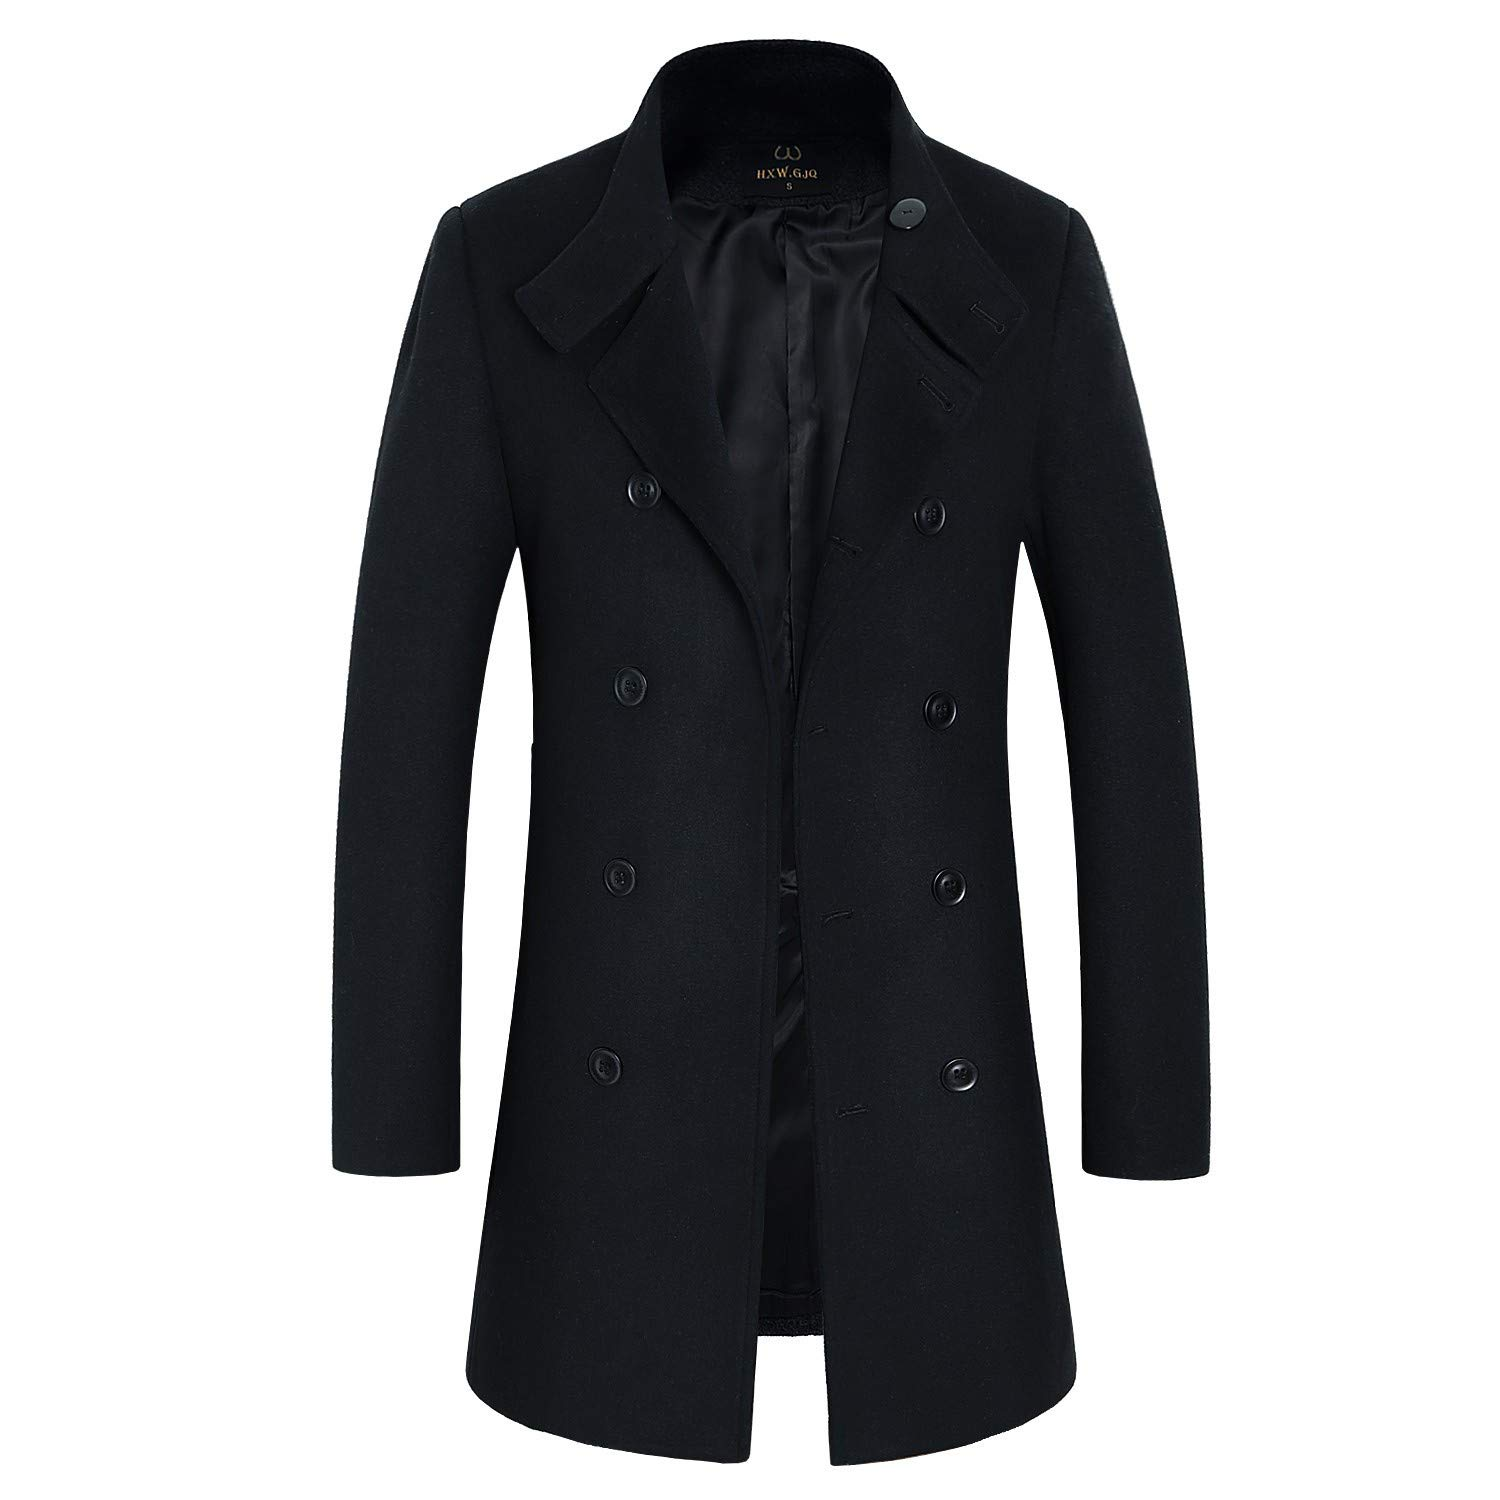 57579a70779 Men s Premium Wool Blend Double Breasted Long Pea Coat at Amazon Men s  Clothing store